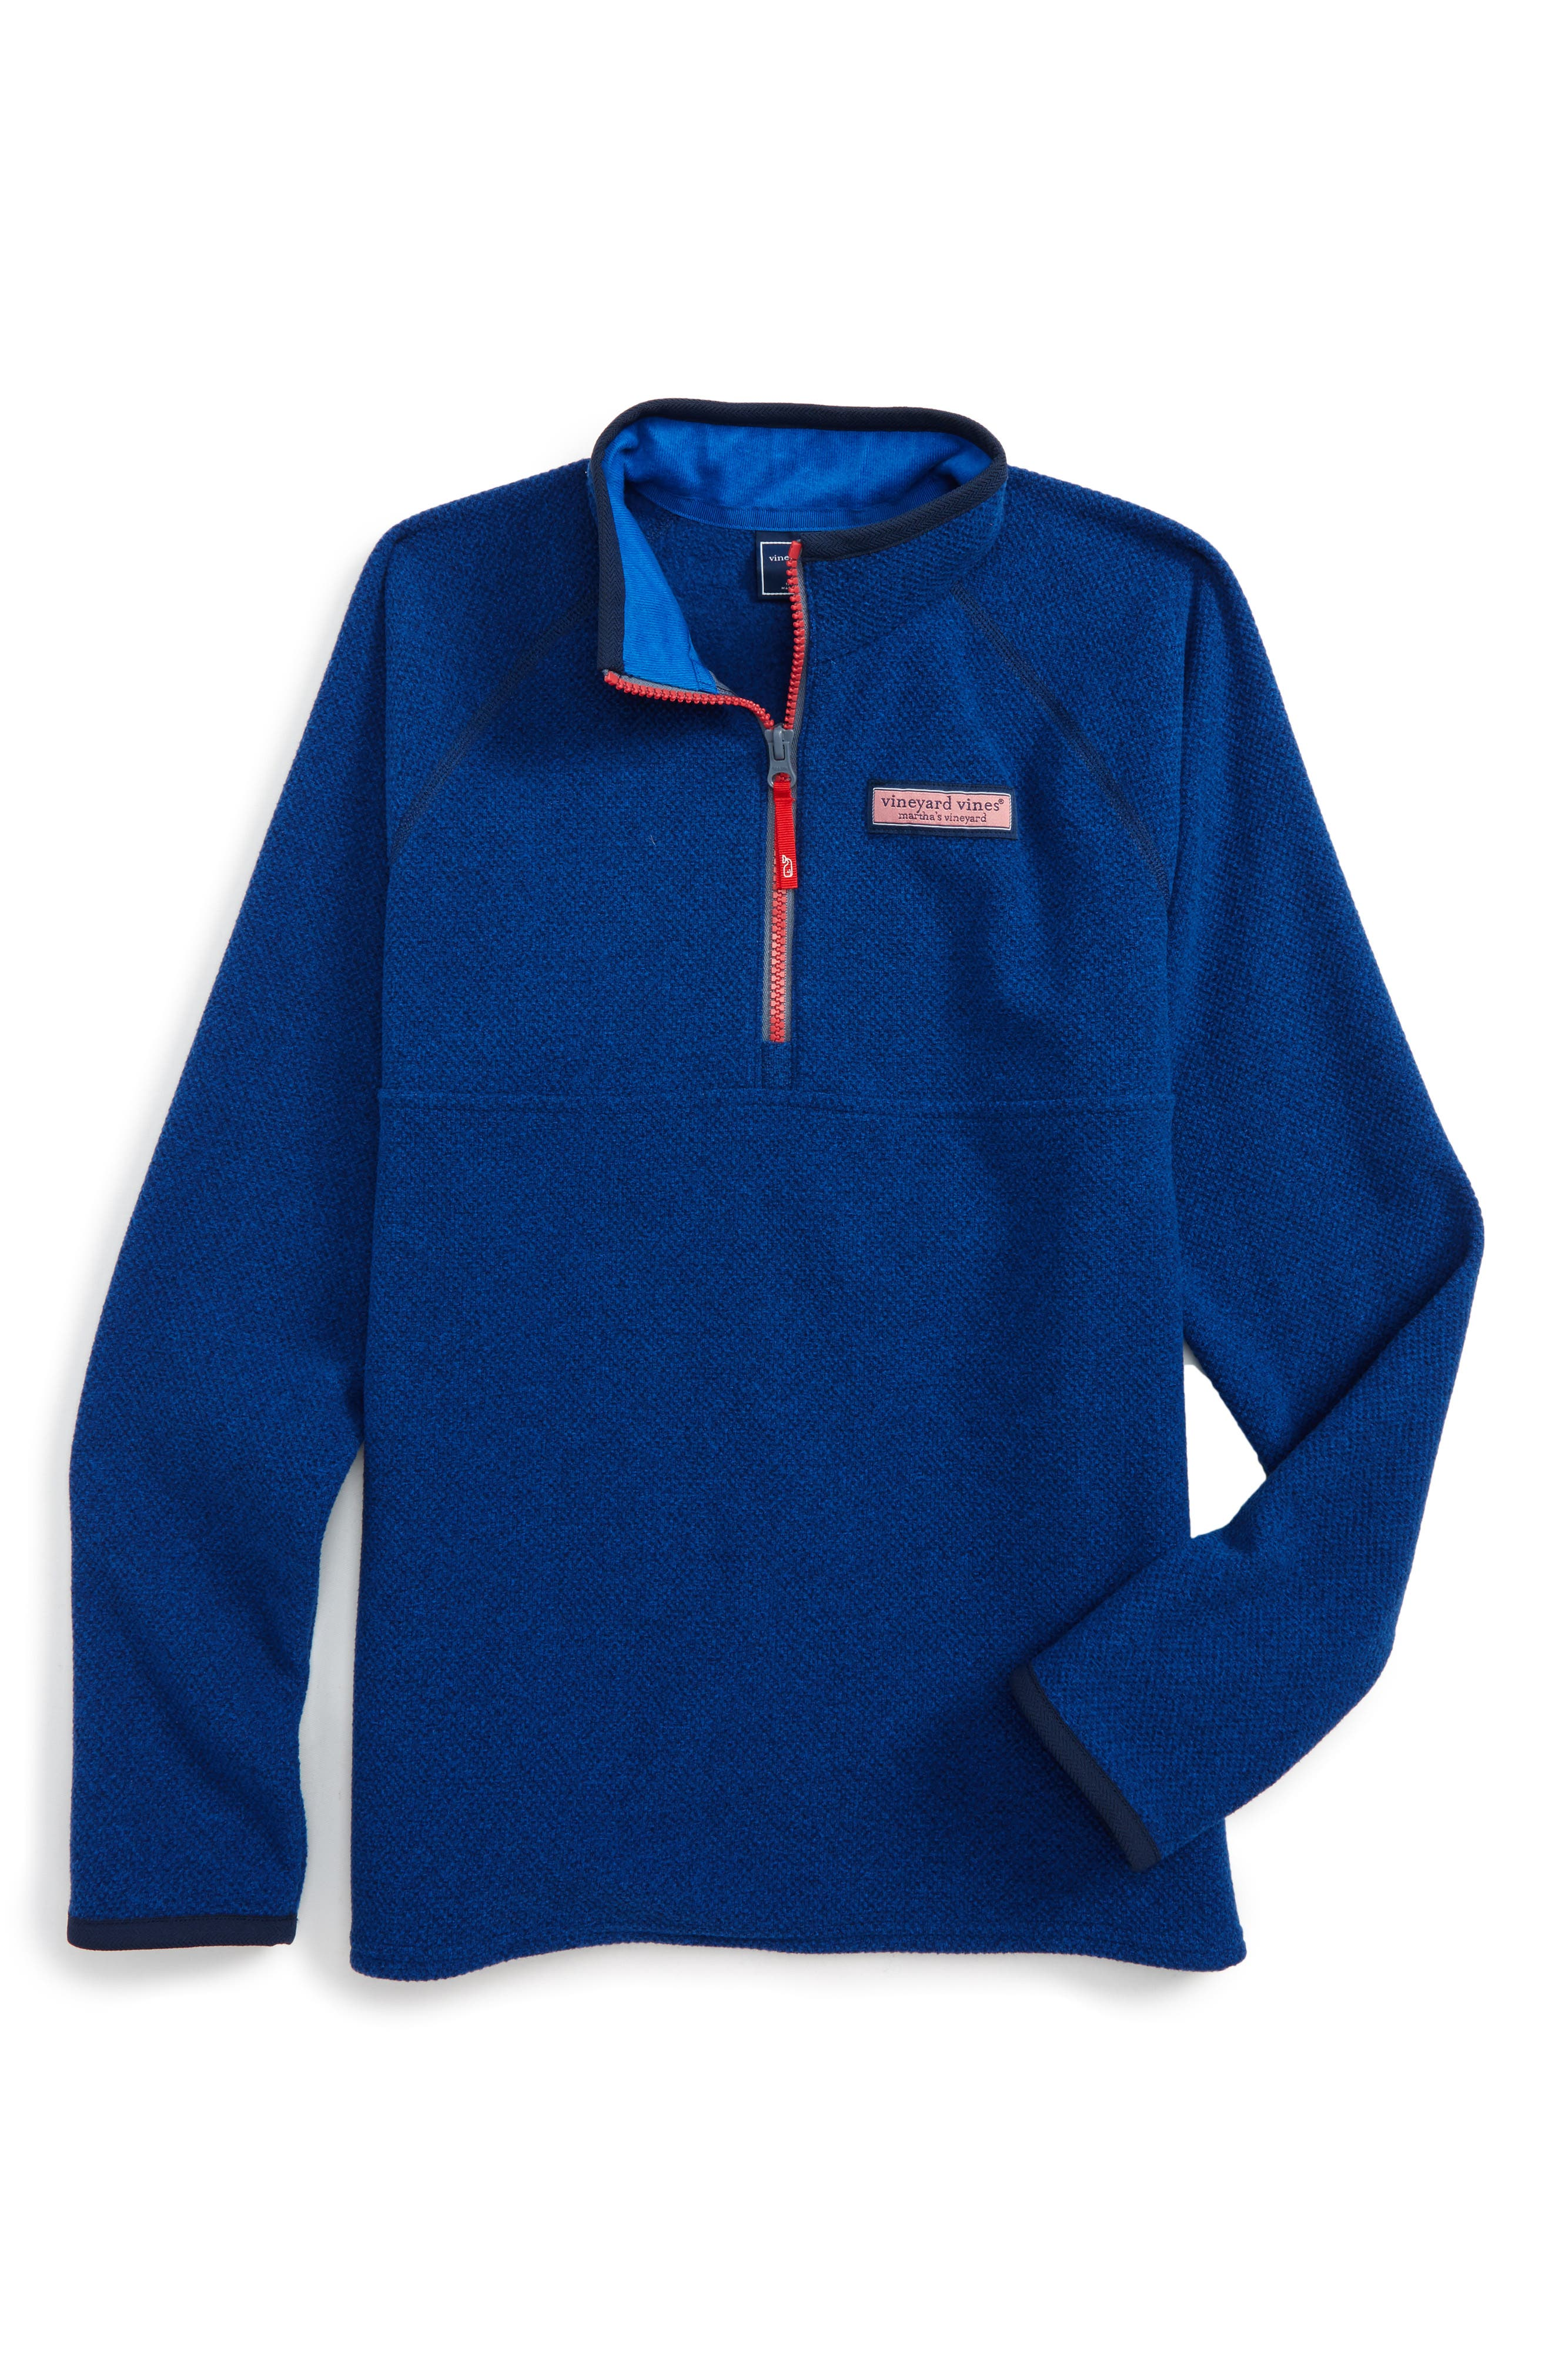 Alternate Image 1 Selected - vineyard vines Quarter Zip Sweater (Big Boys)